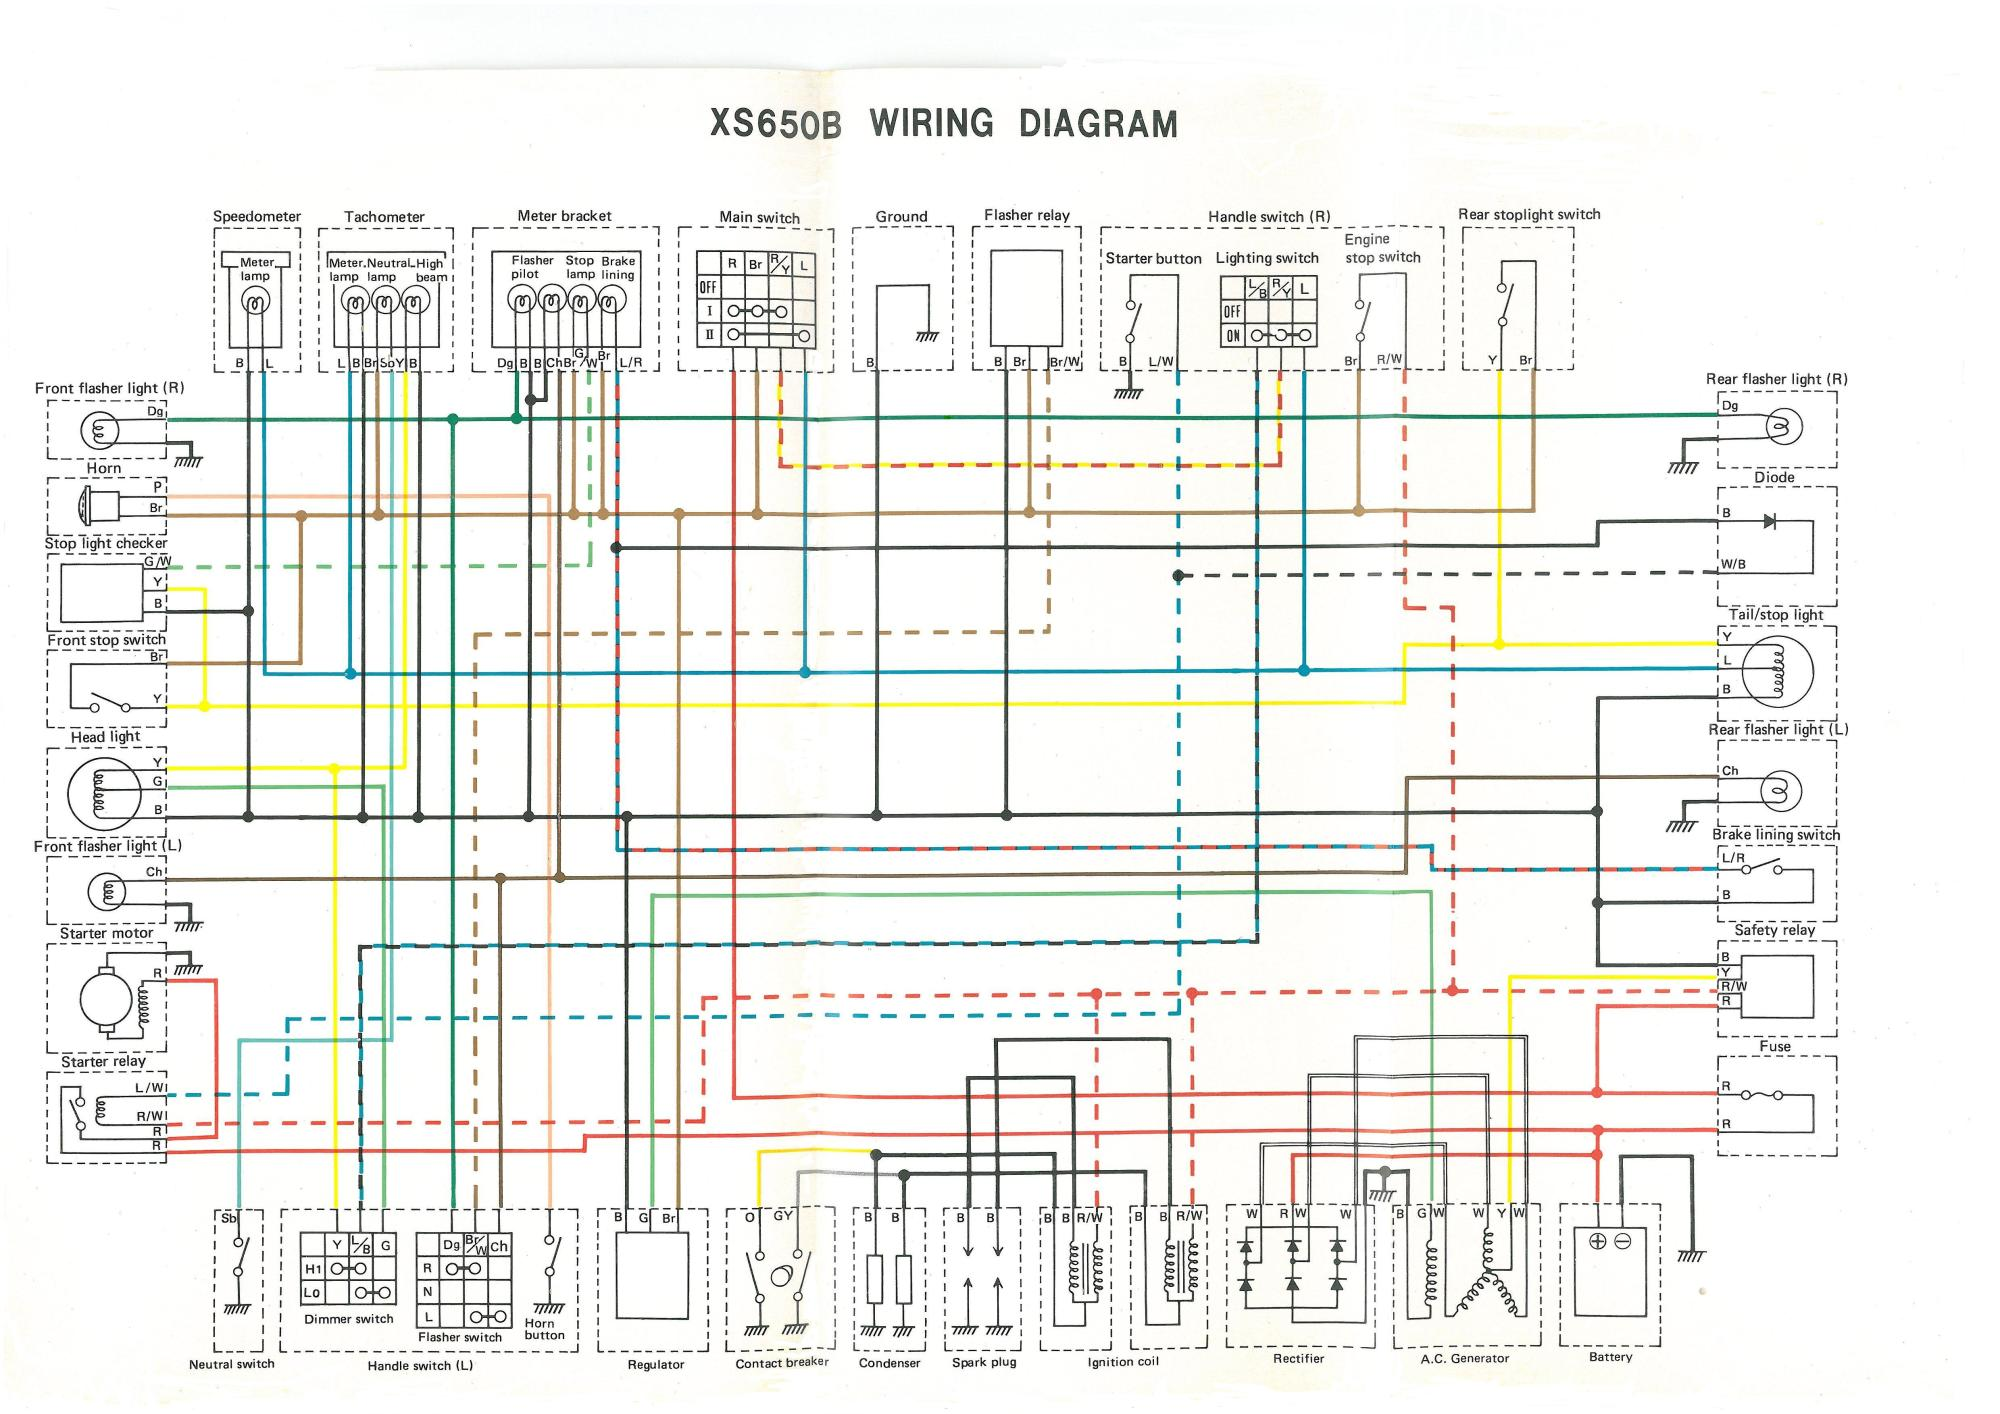 hight resolution of wiring diagram yamaha xs650 blog wiring diagram yamaha xs 250 wiring diagram wiring diagram yamaha xs650